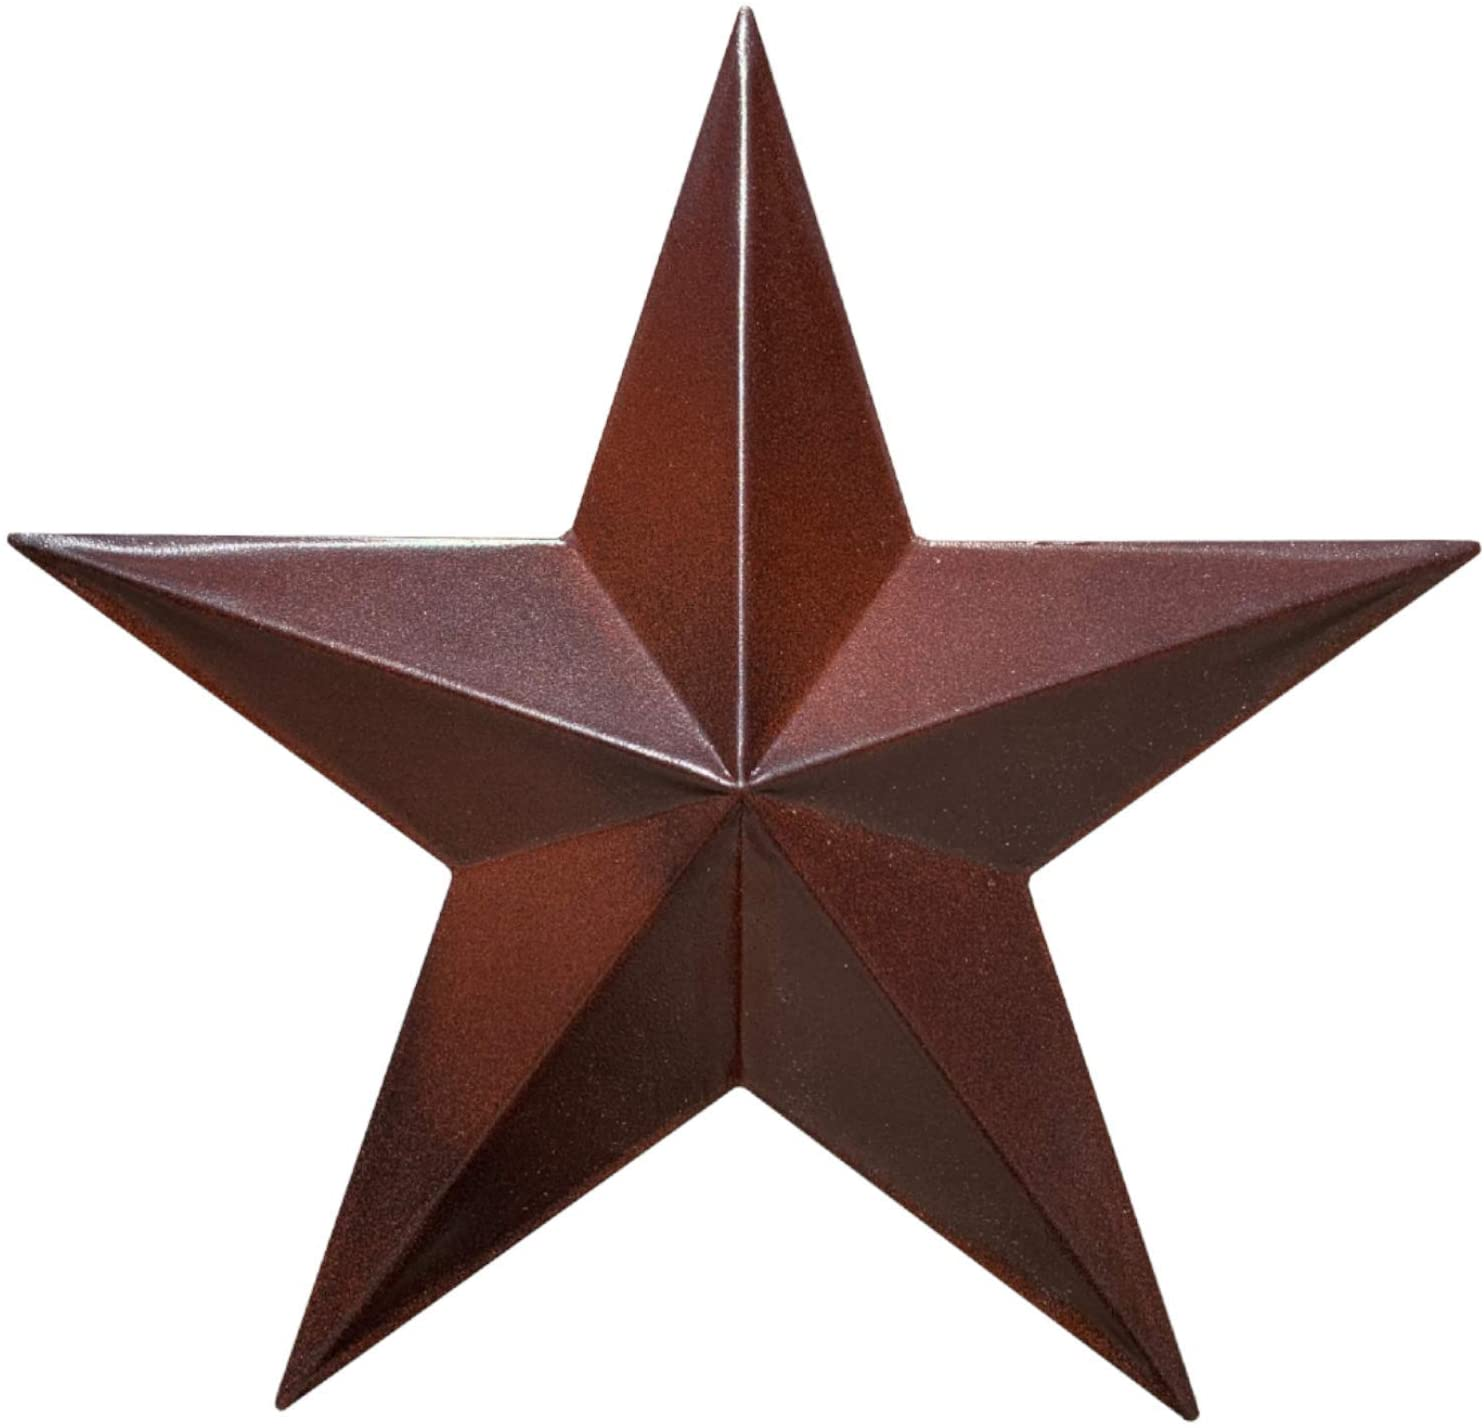 "EcoRise Barn Star - Metal Stars for Outside Texas Stars Art Rustic Vintage Western Country Home Farmhouse Wall Decor (12"")"